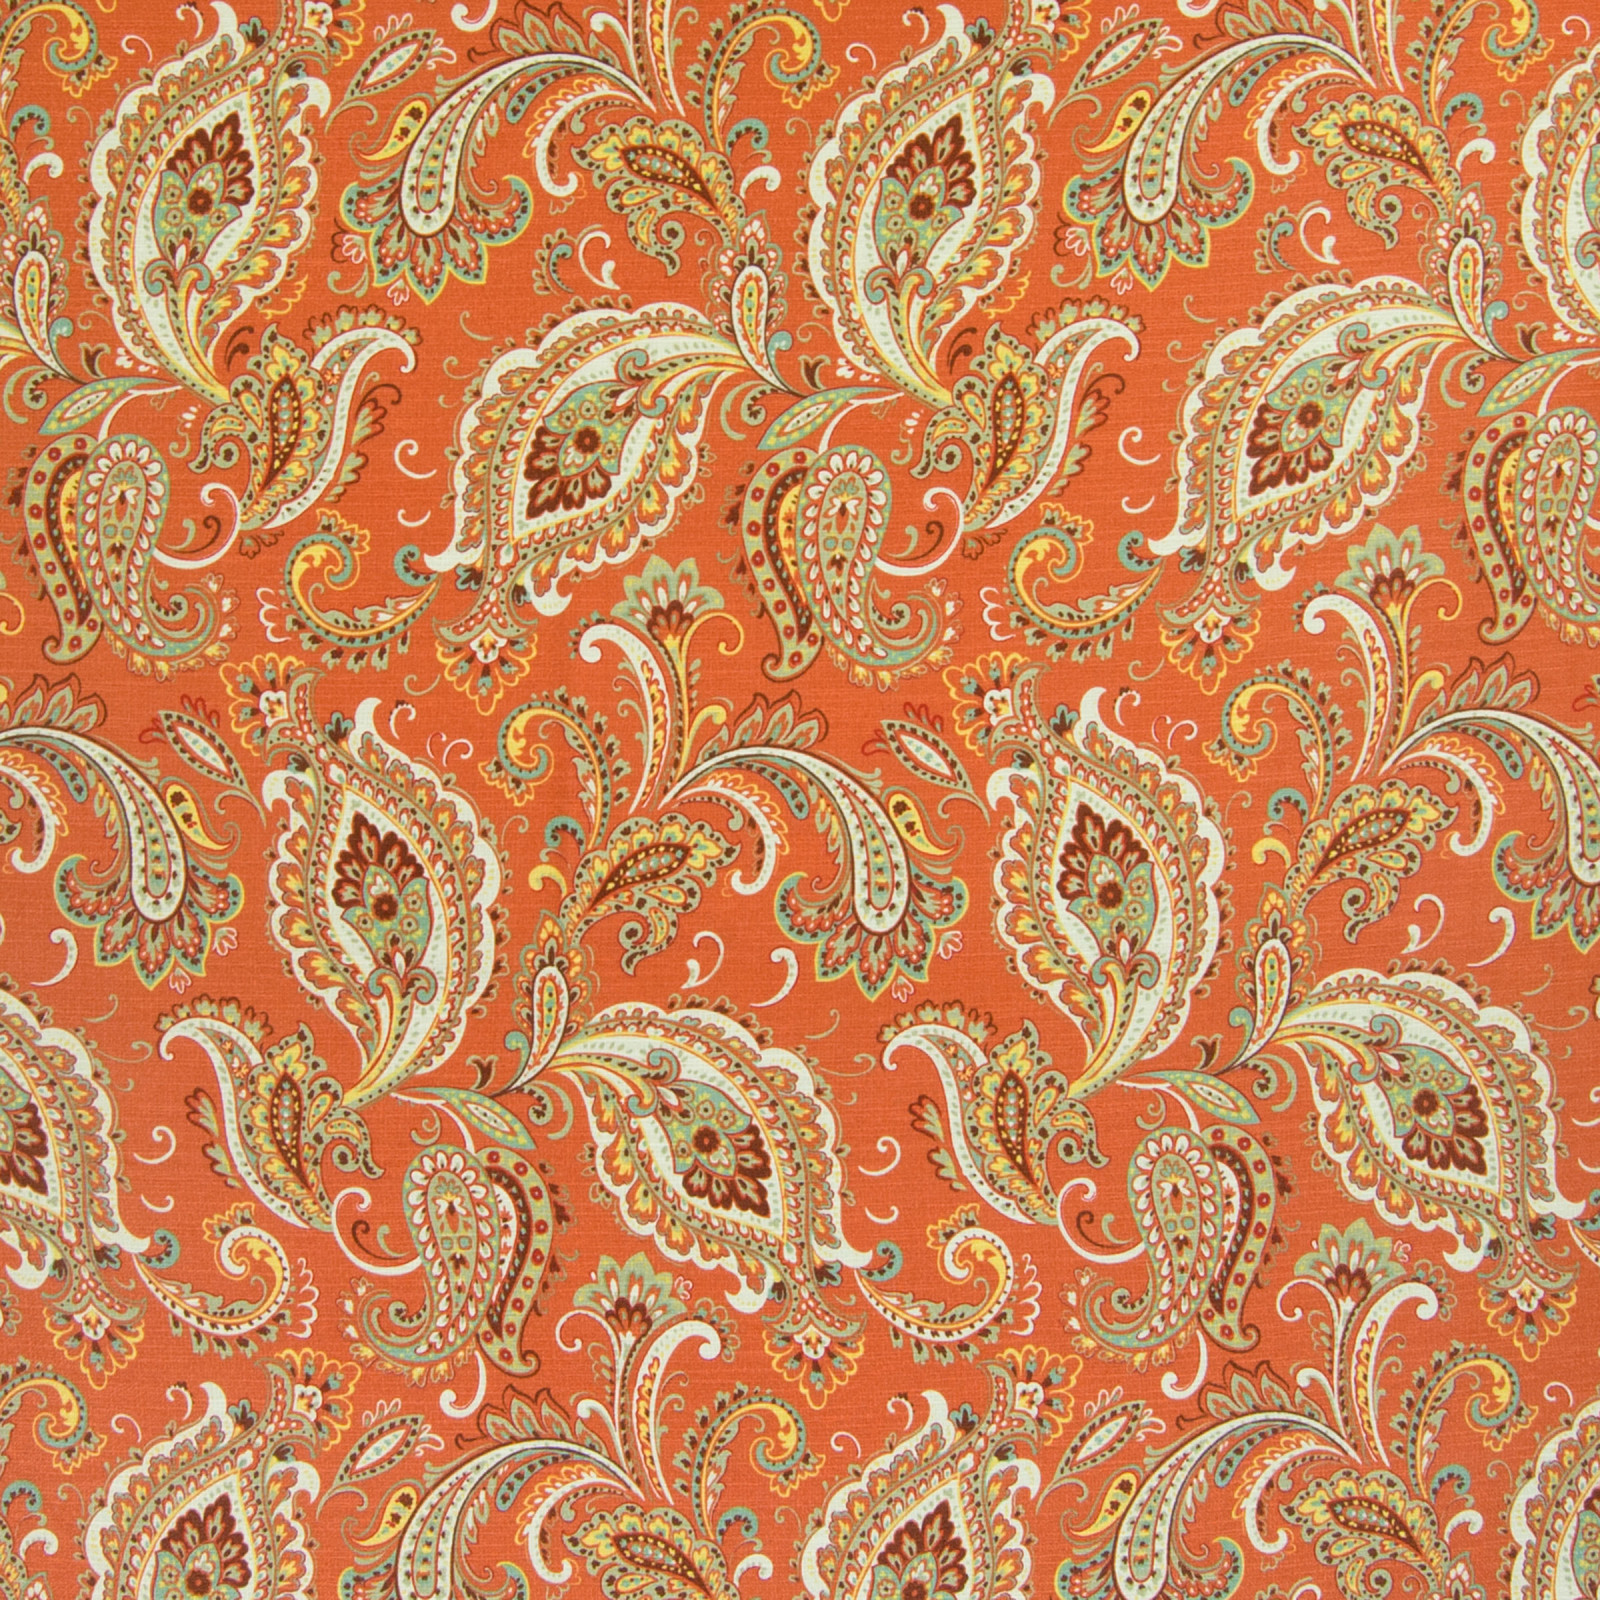 Russet Orange Paisley Prints Upholstery Fabric